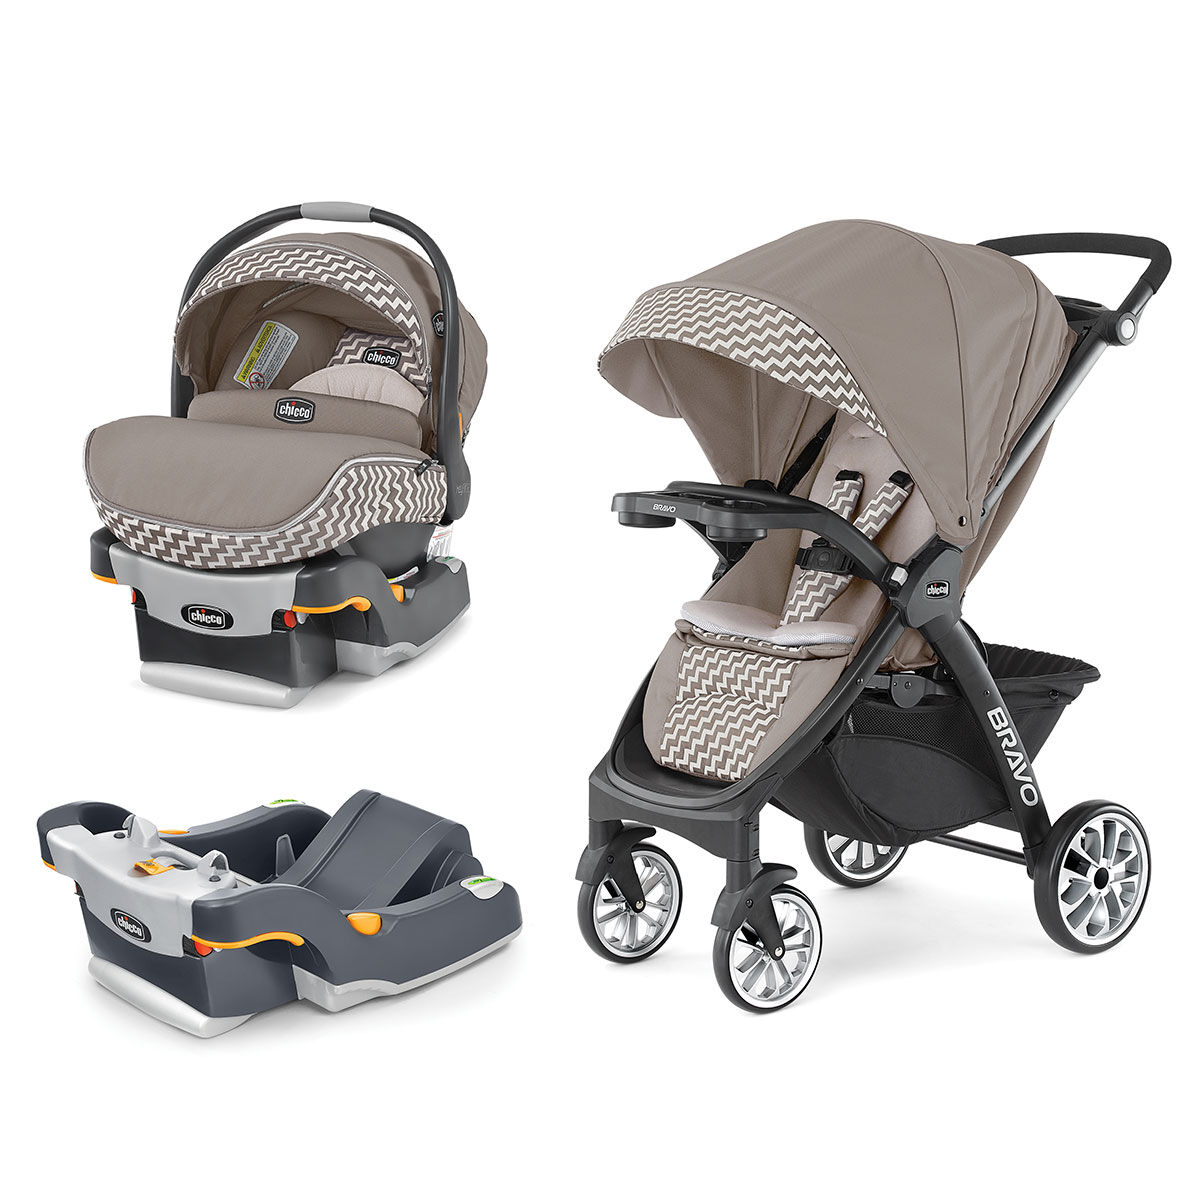 car seat stroller combo doona baby travel system reviews russell hobbs reviews produc car seat. Black Bedroom Furniture Sets. Home Design Ideas